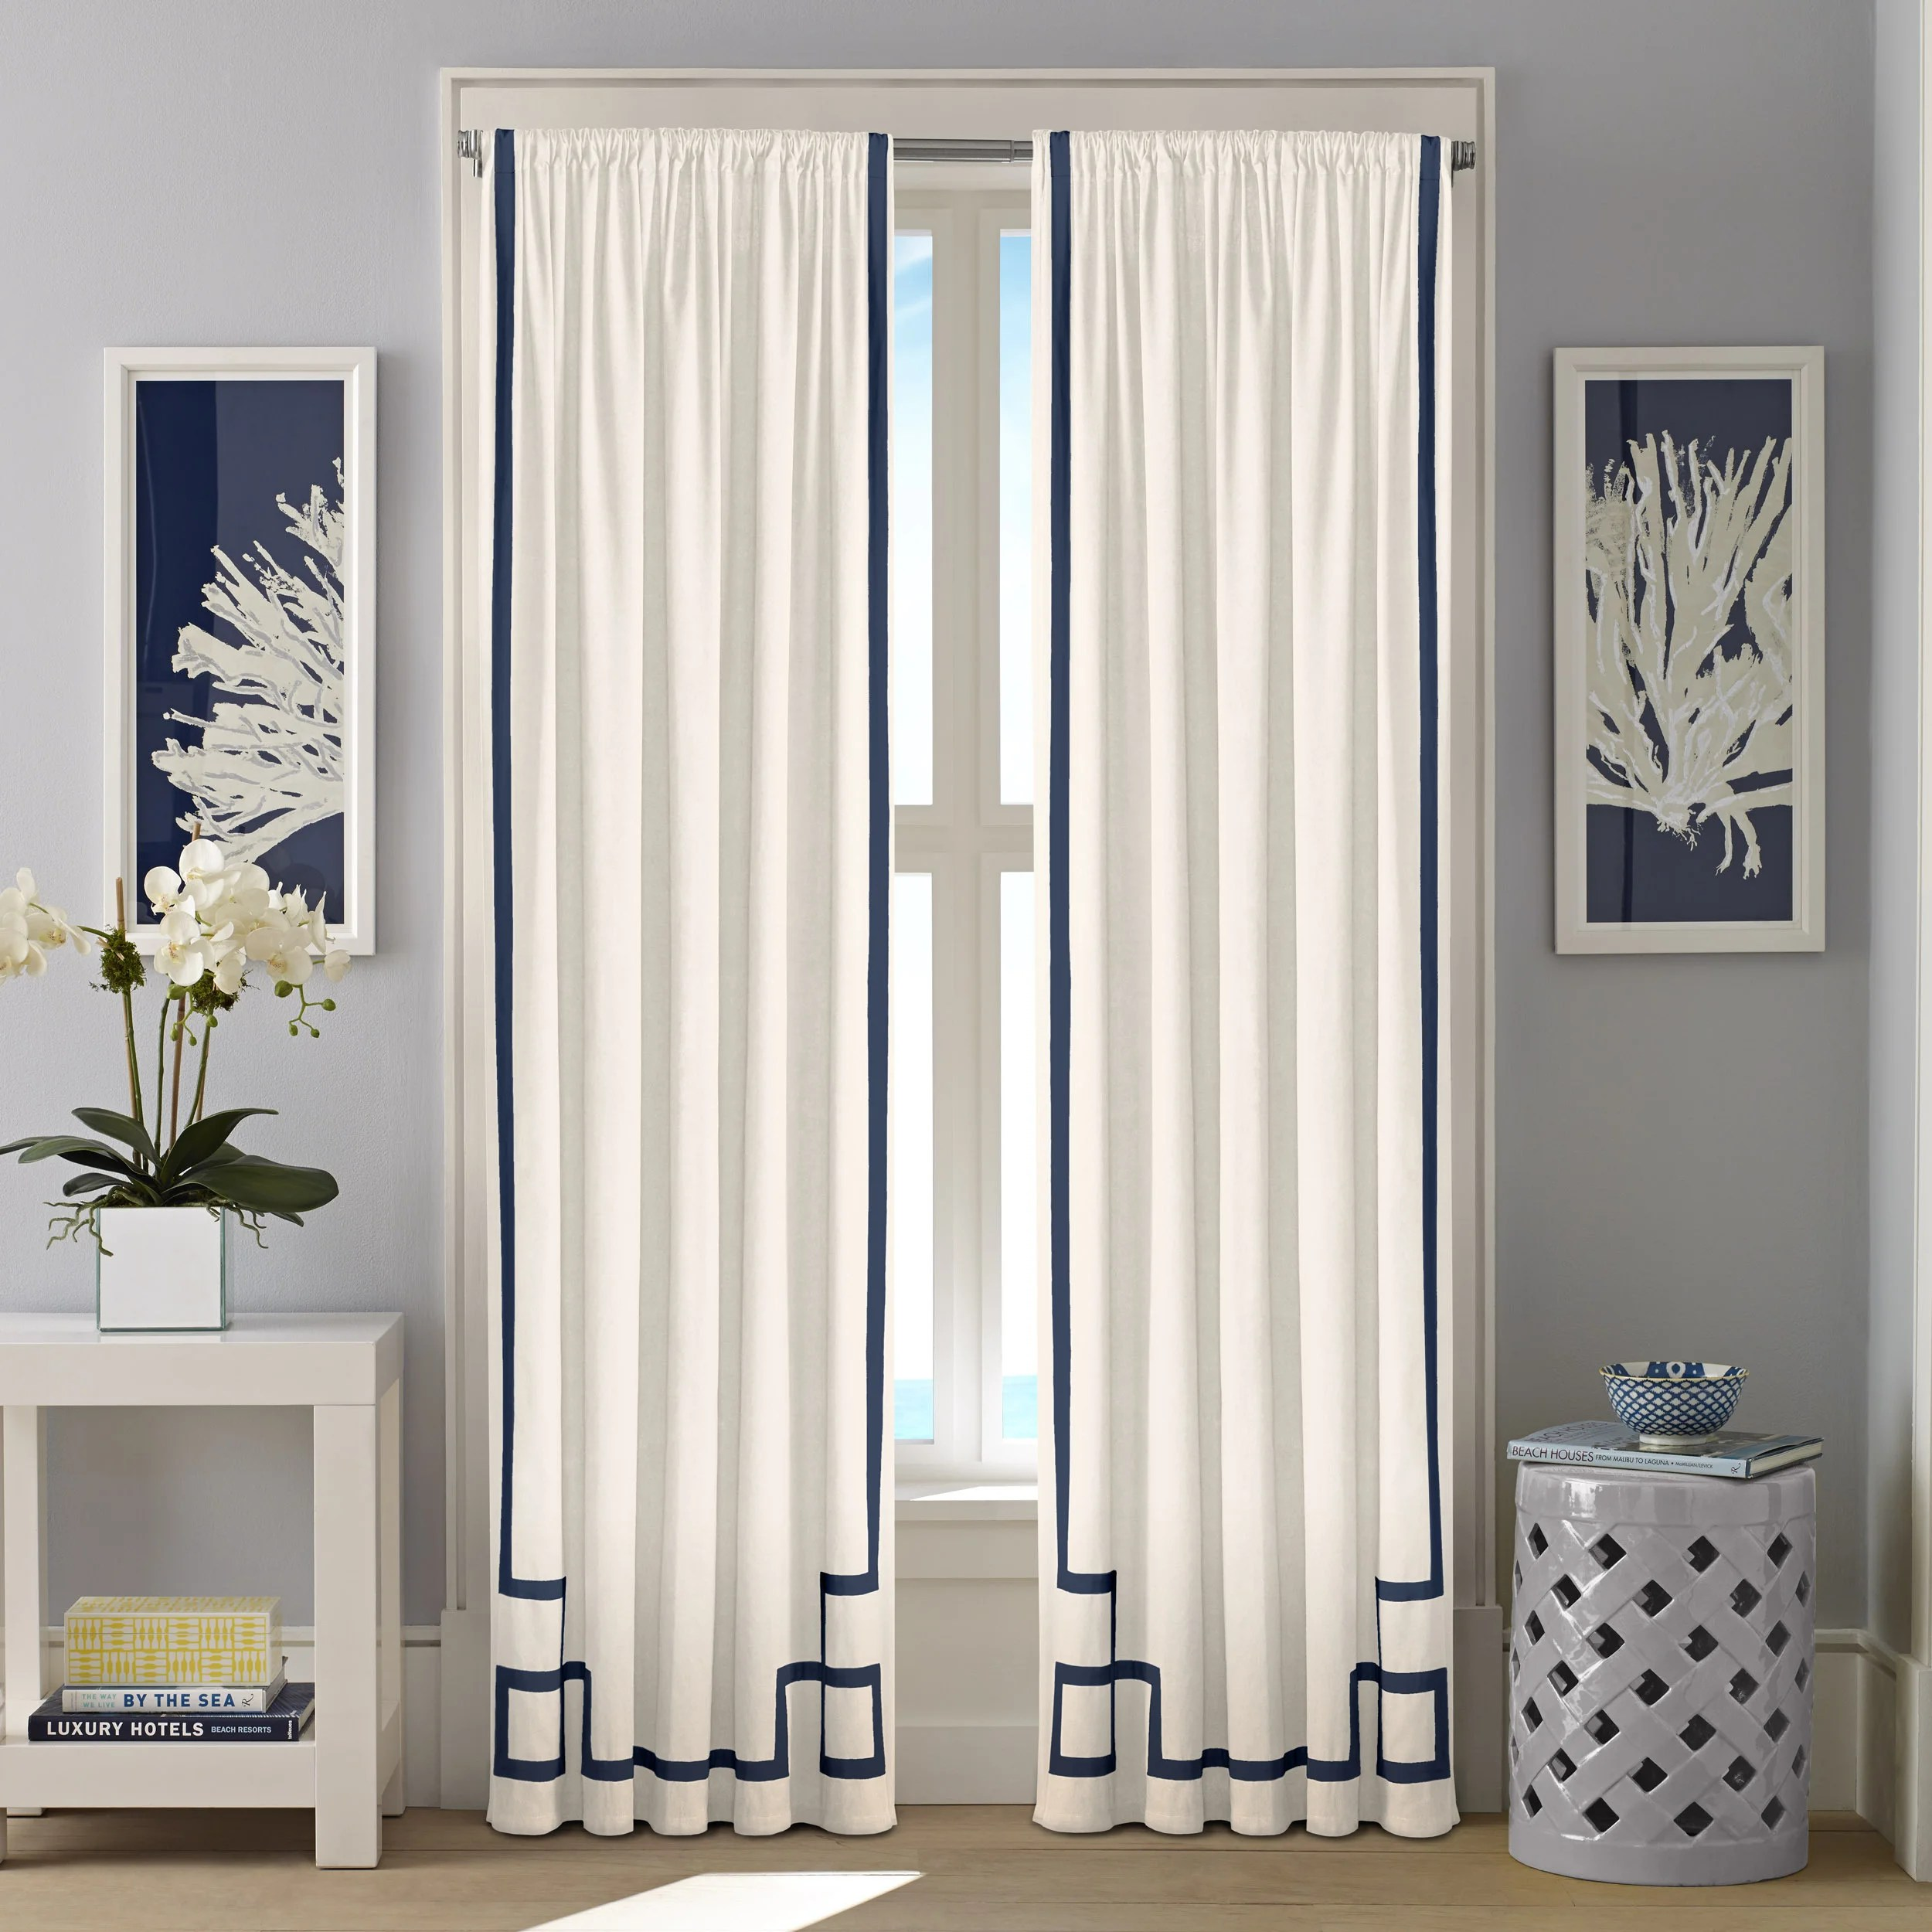 Ribbon Trim Curtains Nautica Ribbon Trim Cotton Twill Curtain Panel Set 52 X 84